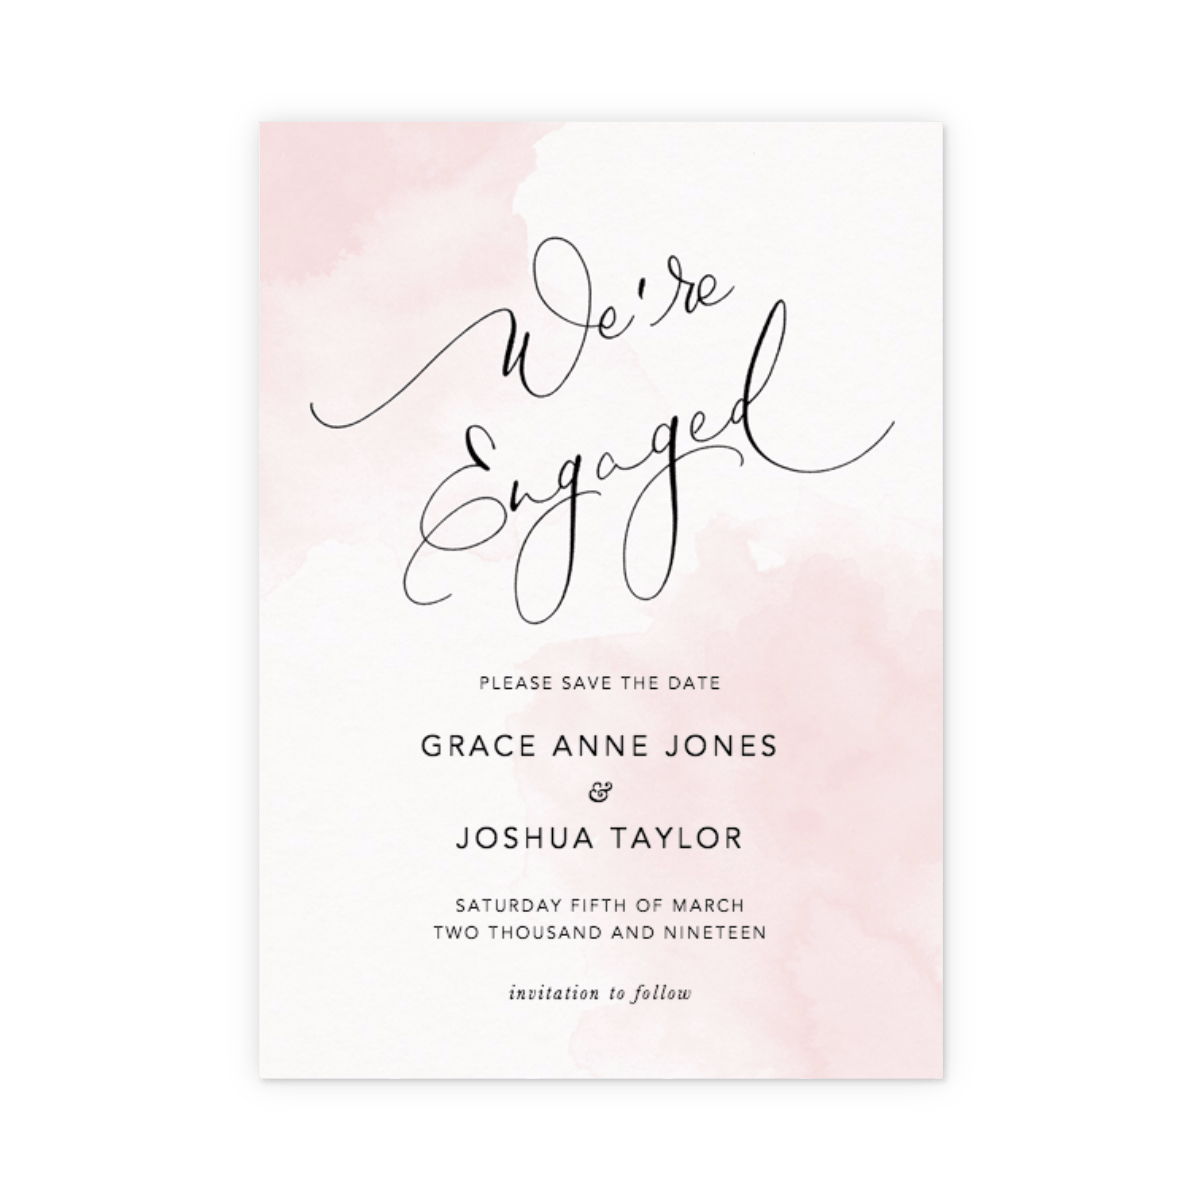 Https%3a%2f%2fwww.papier.com%2fproduct image%2f25577%2f4%2fwe re engaged blush 6383 front 1500026296.png?ixlib=rb 1.1